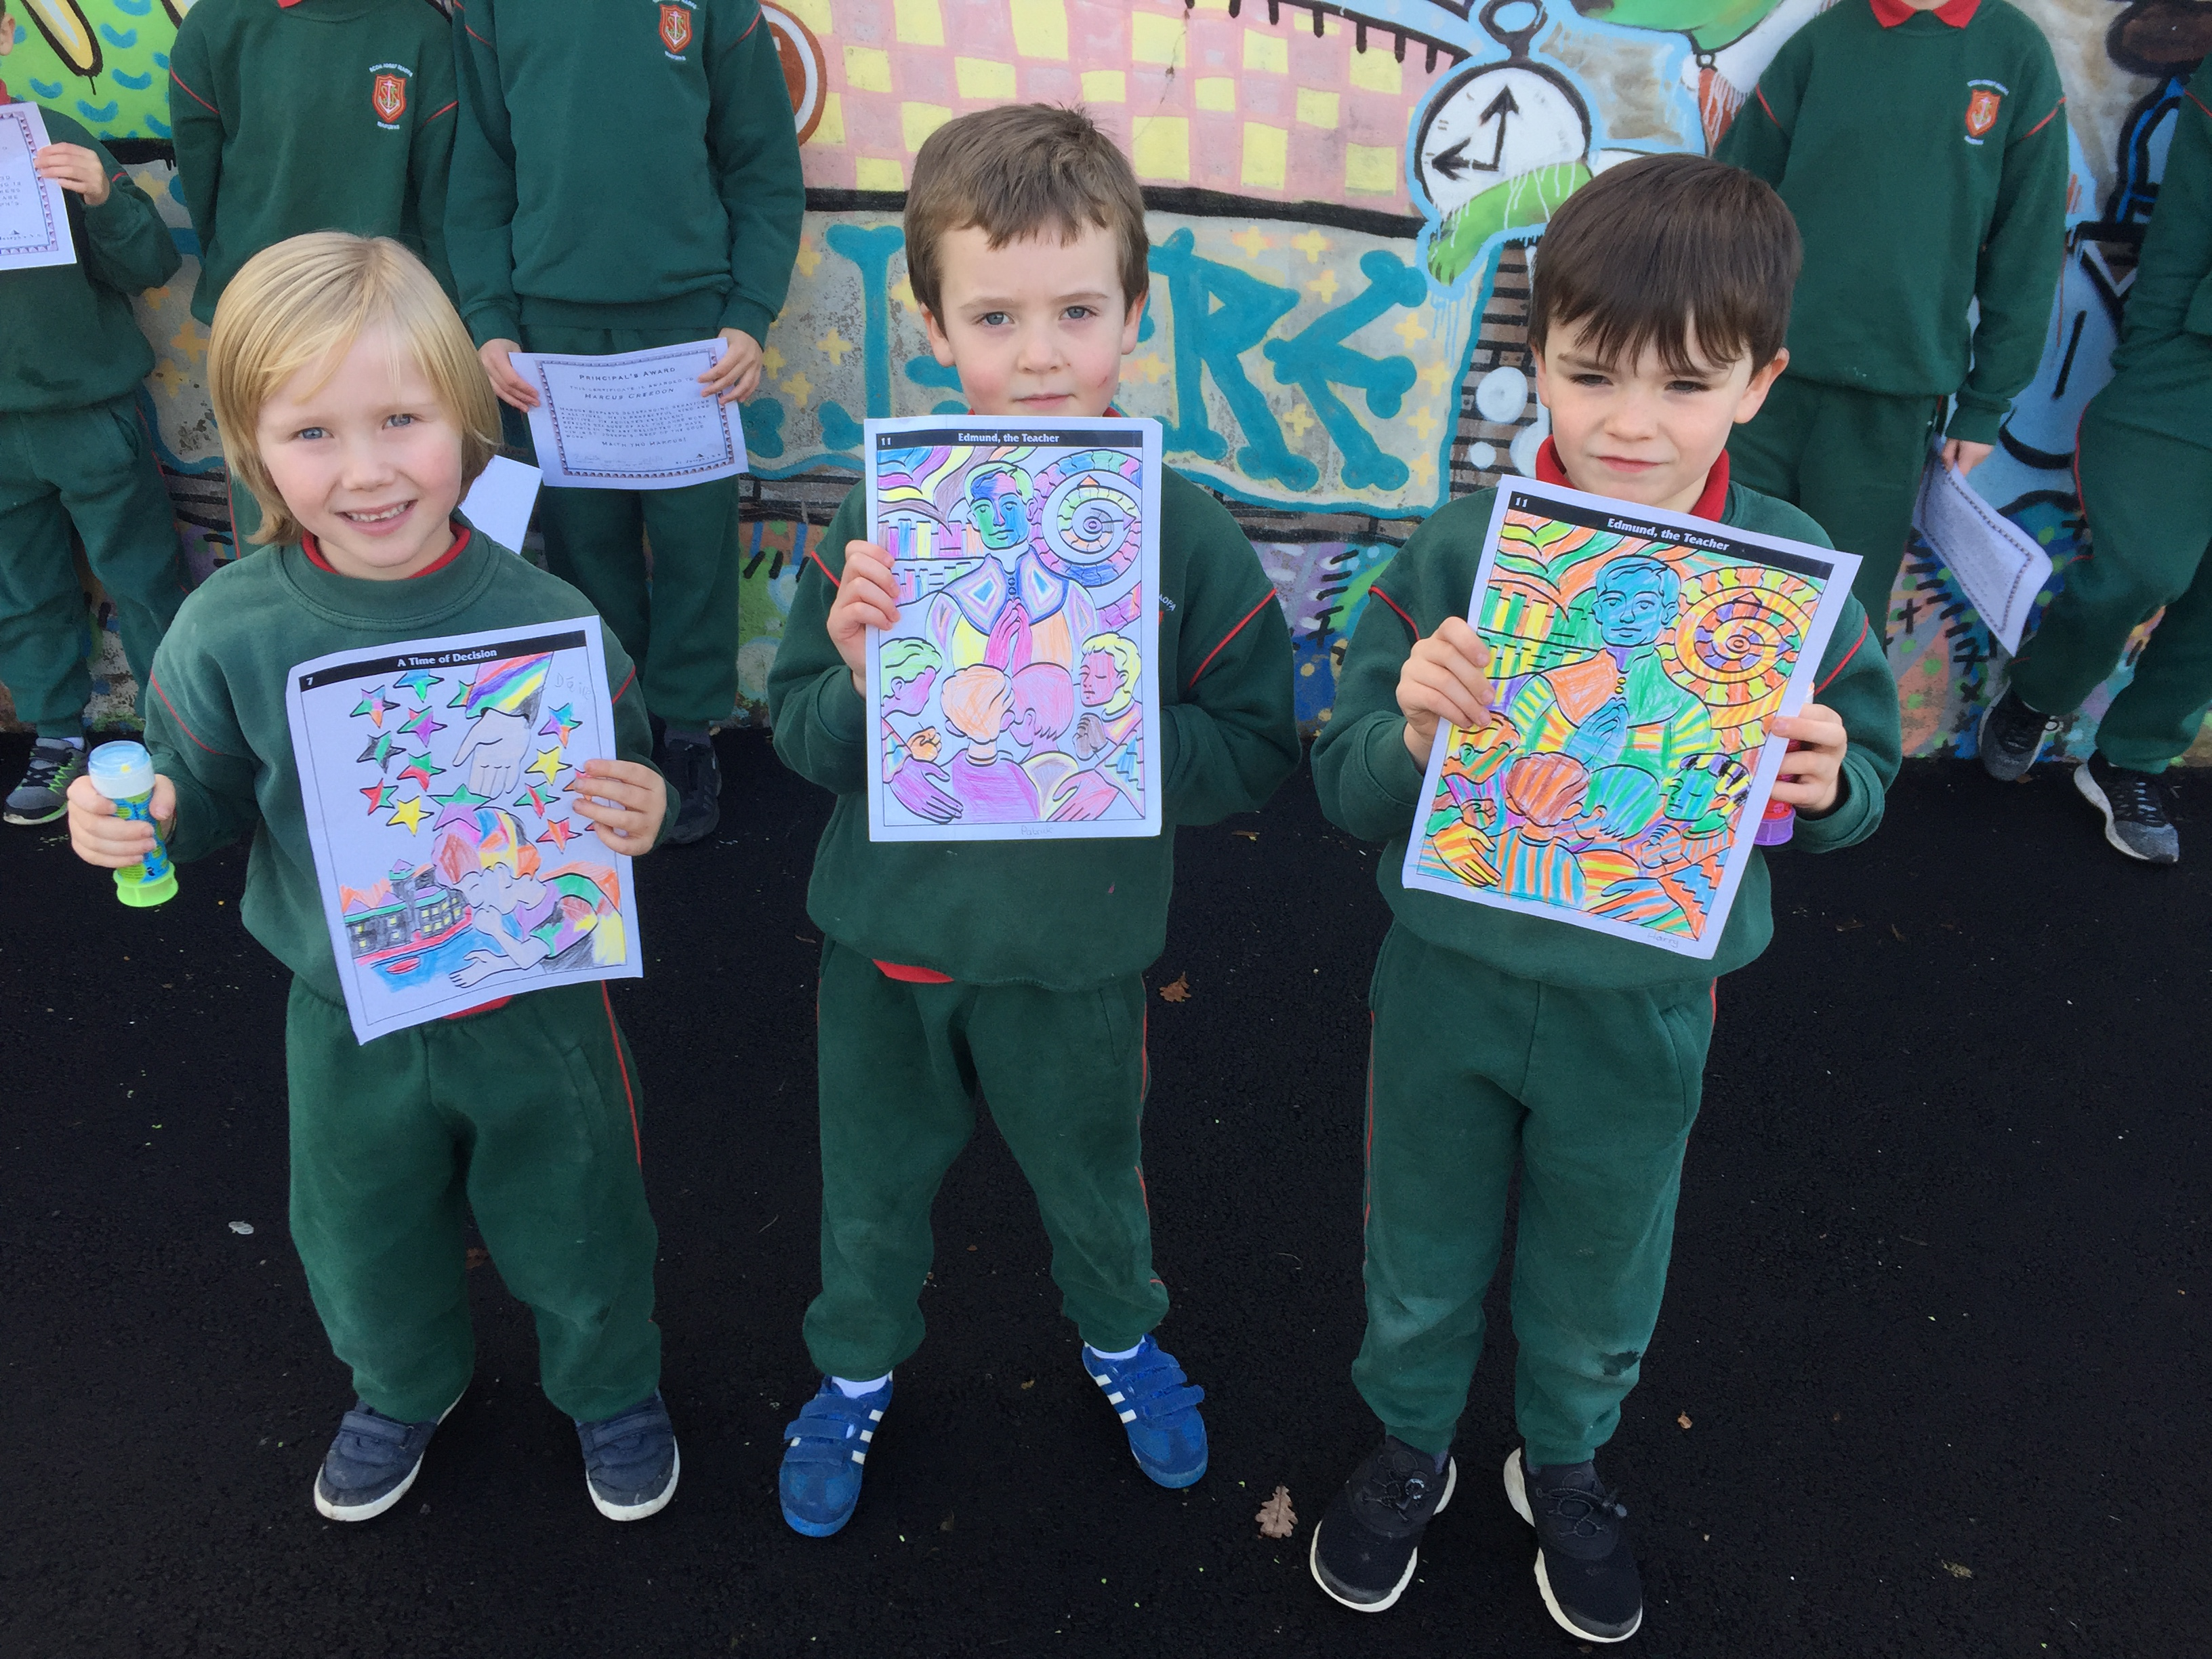 St Joseph's Presentation Day Art and Poetry Competition